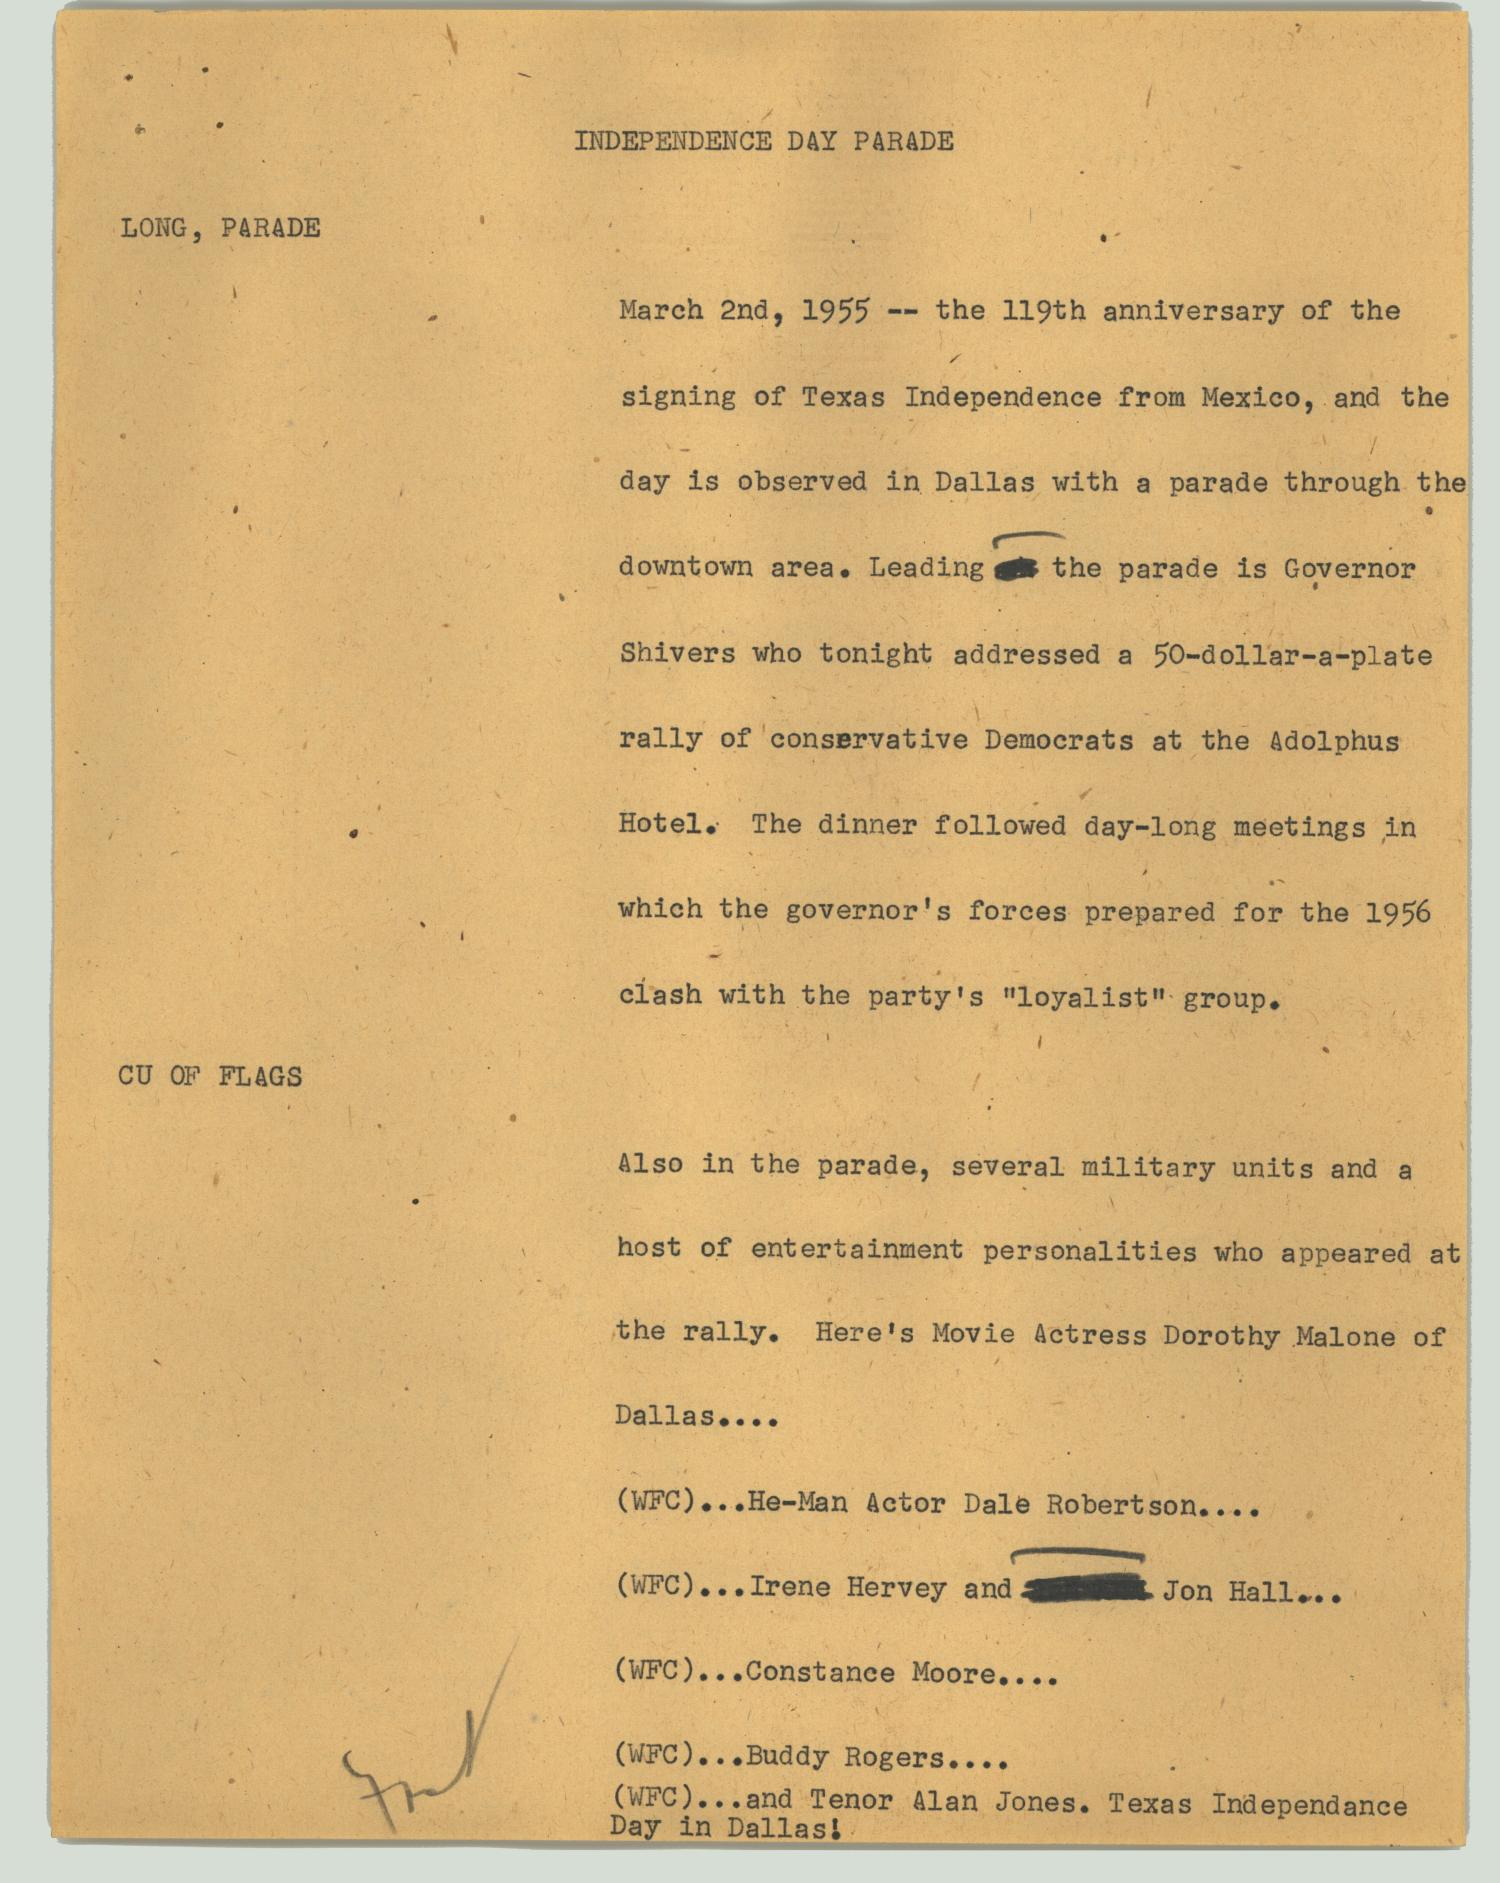 A script details the festivities in Dallas on Texas Independence Day, 1955